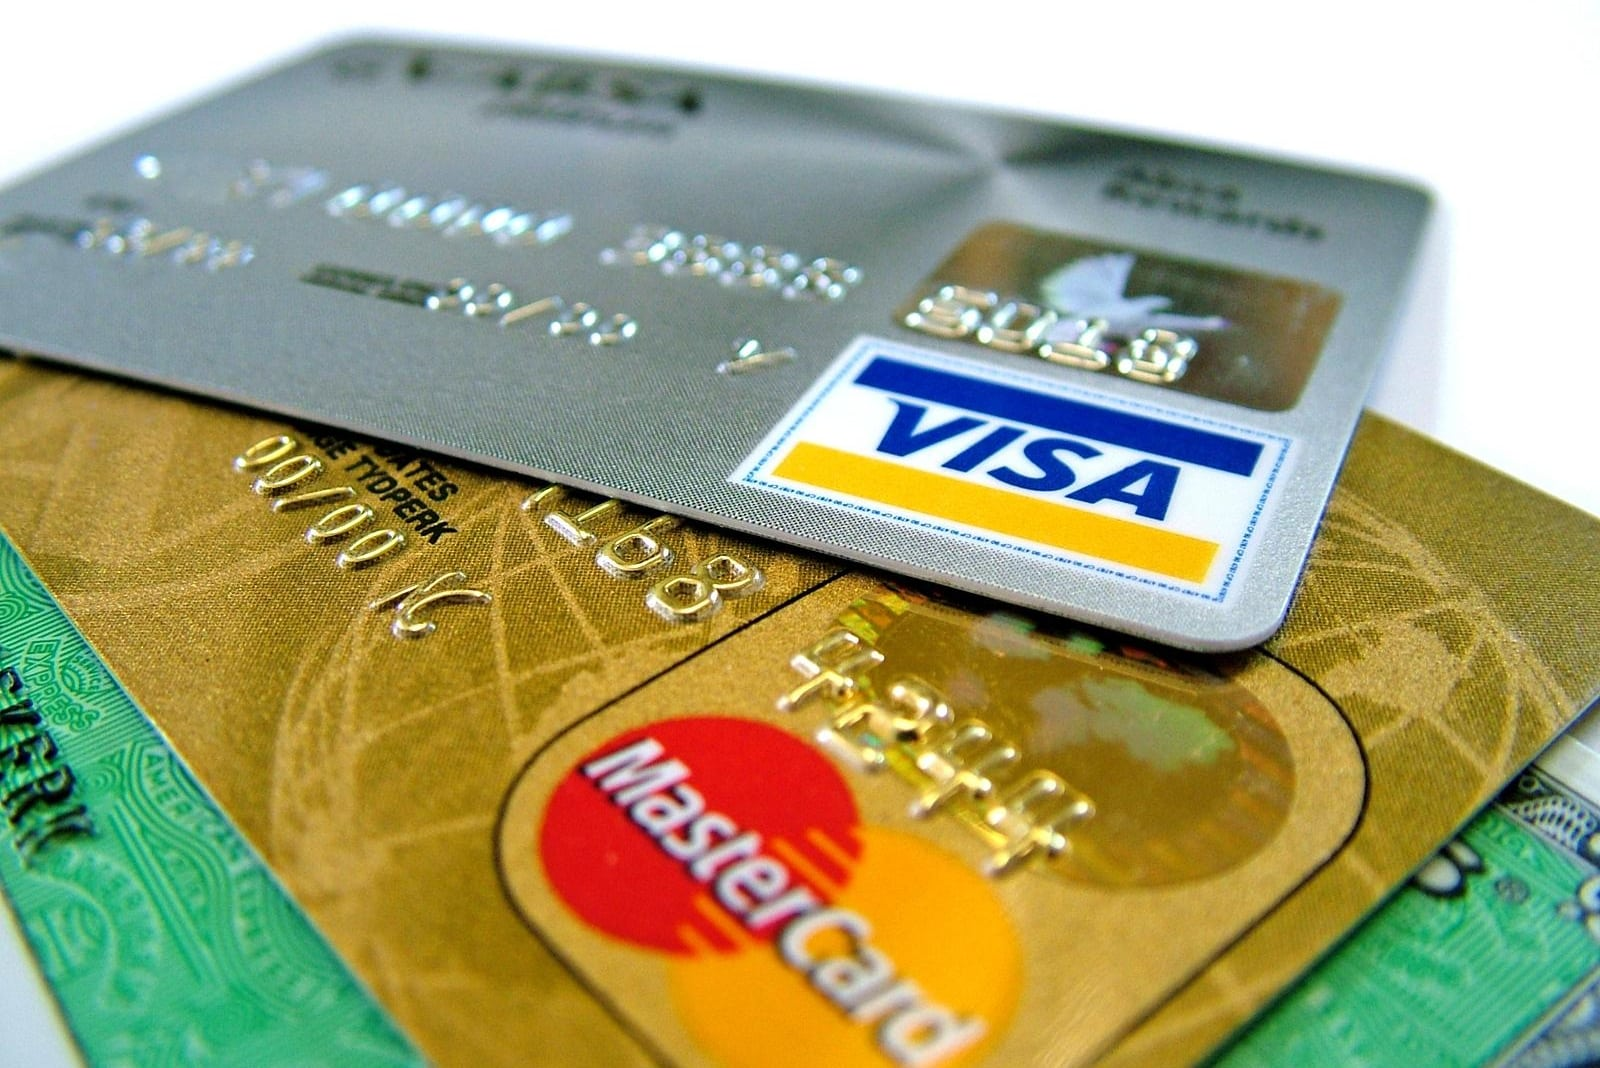 1509-Ex0001-credit-cards.jpg